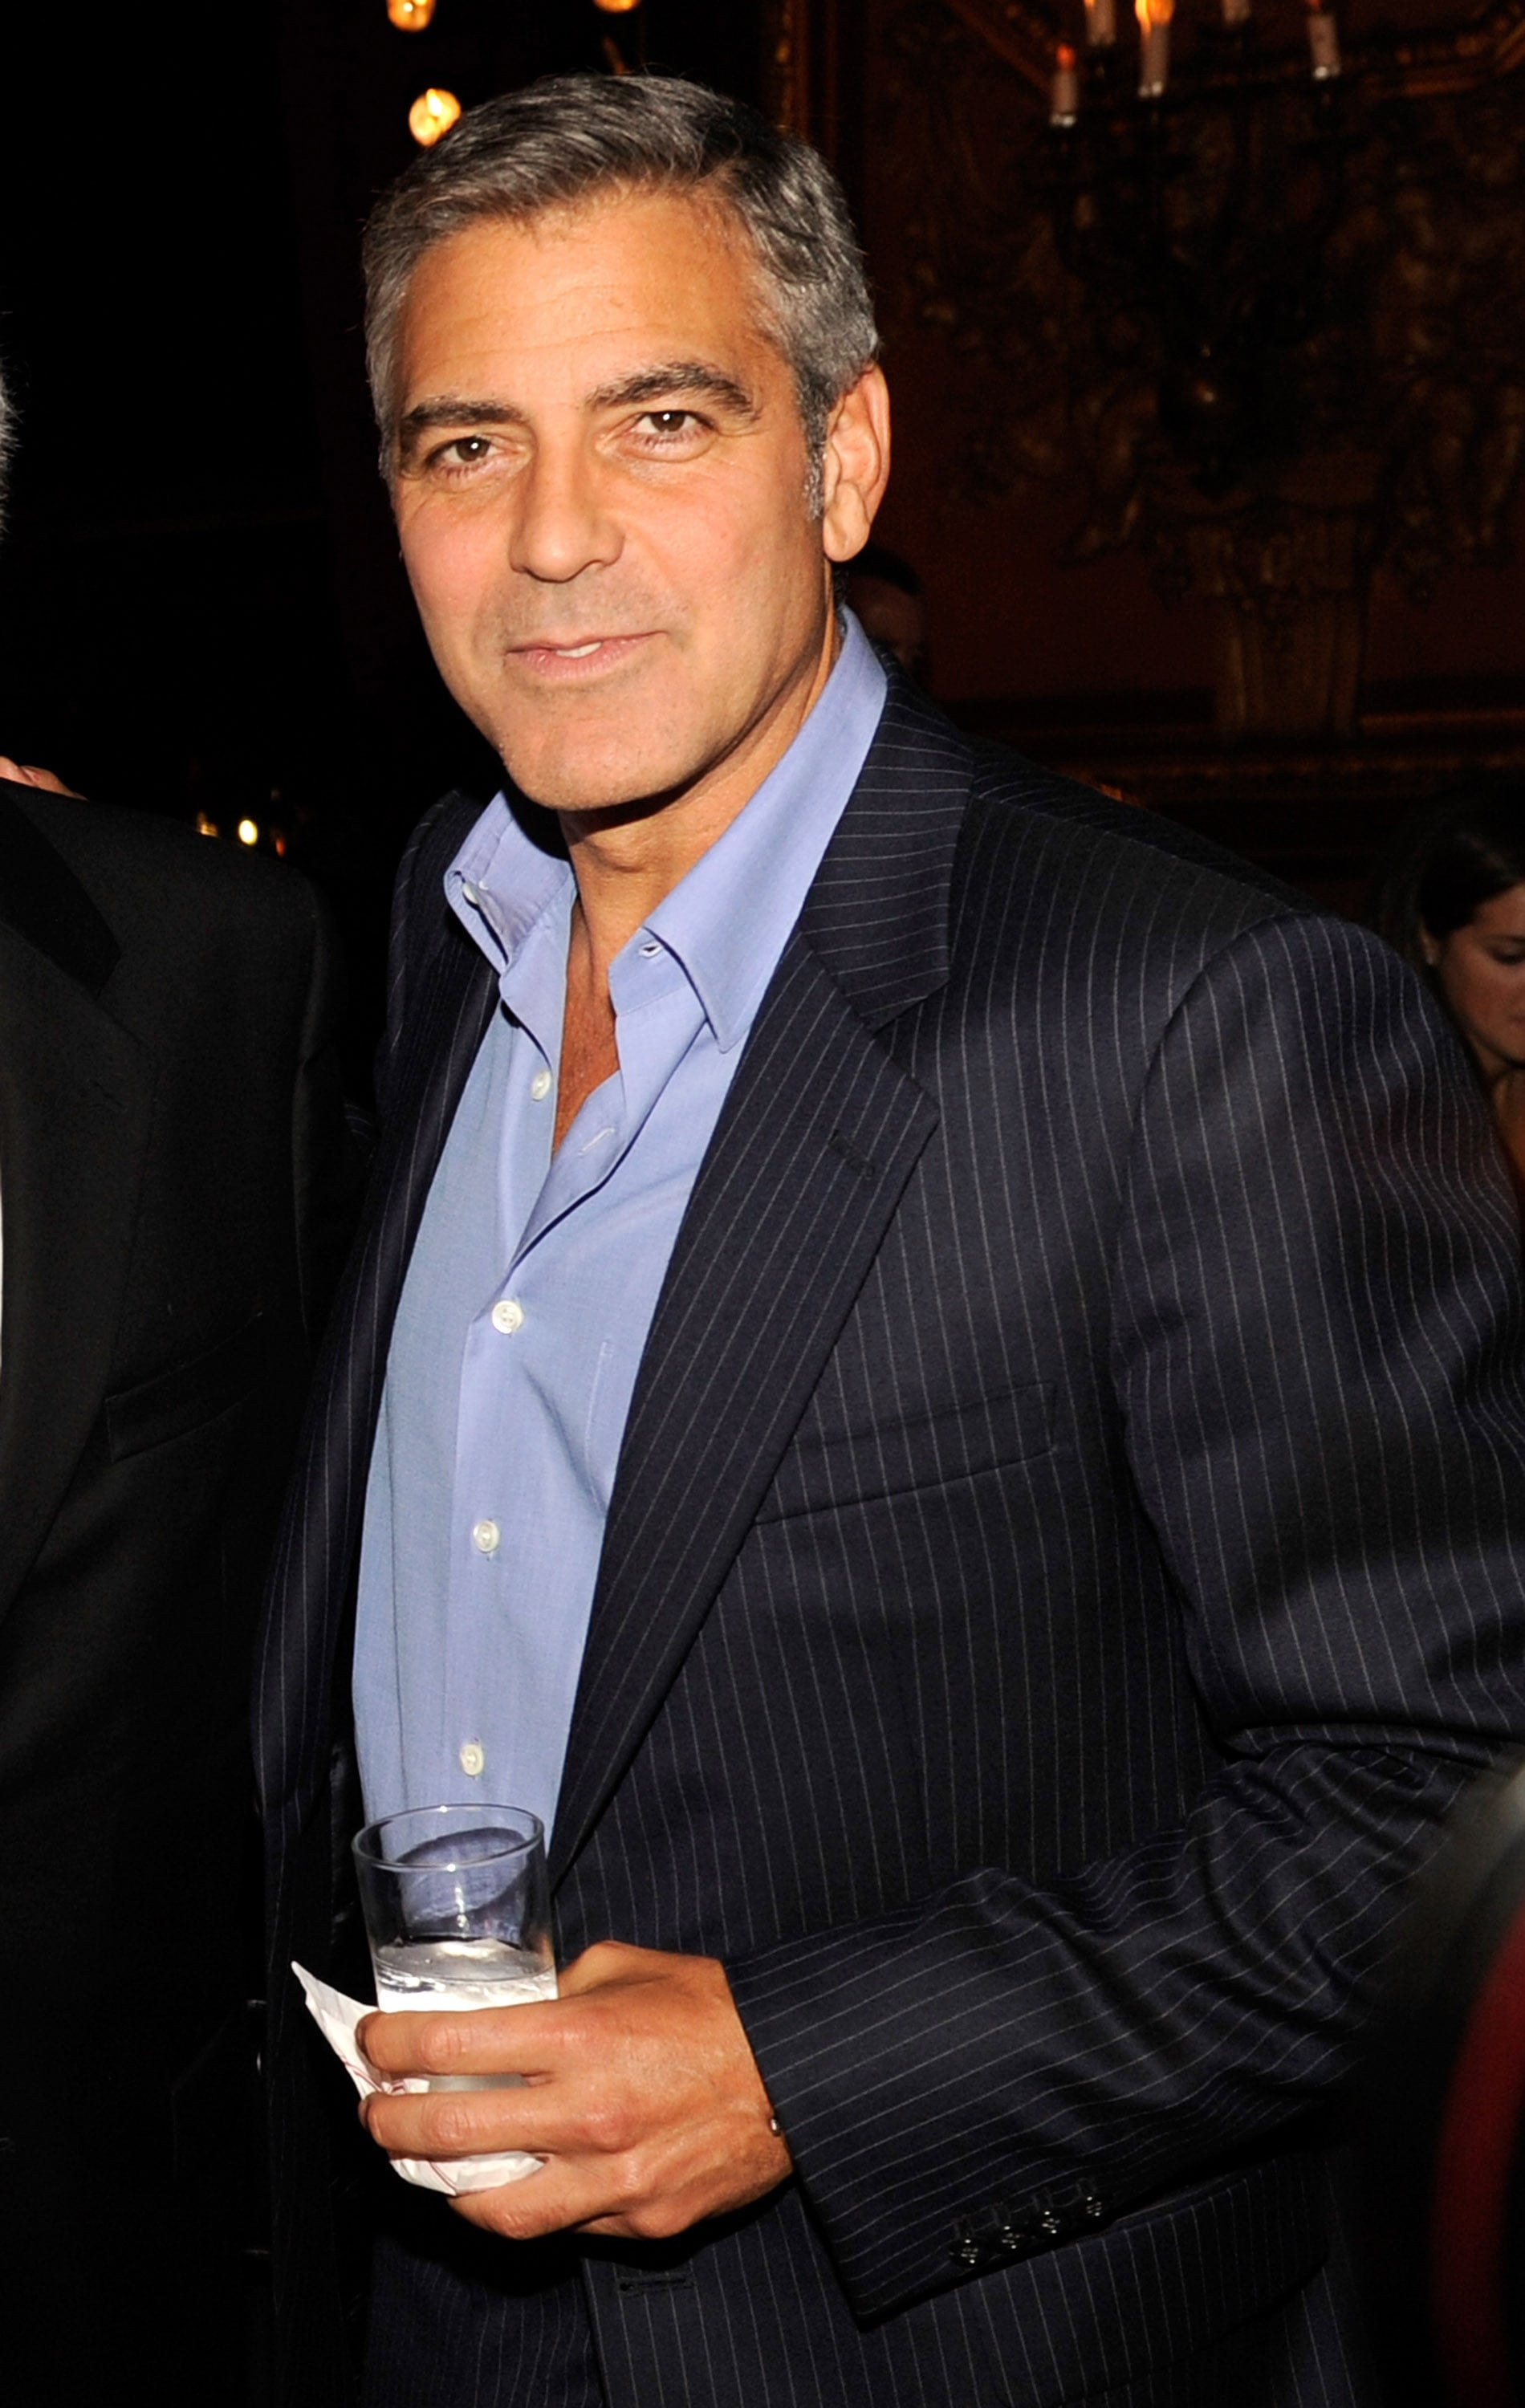 George Clooney at the The Ides of March afterparty.